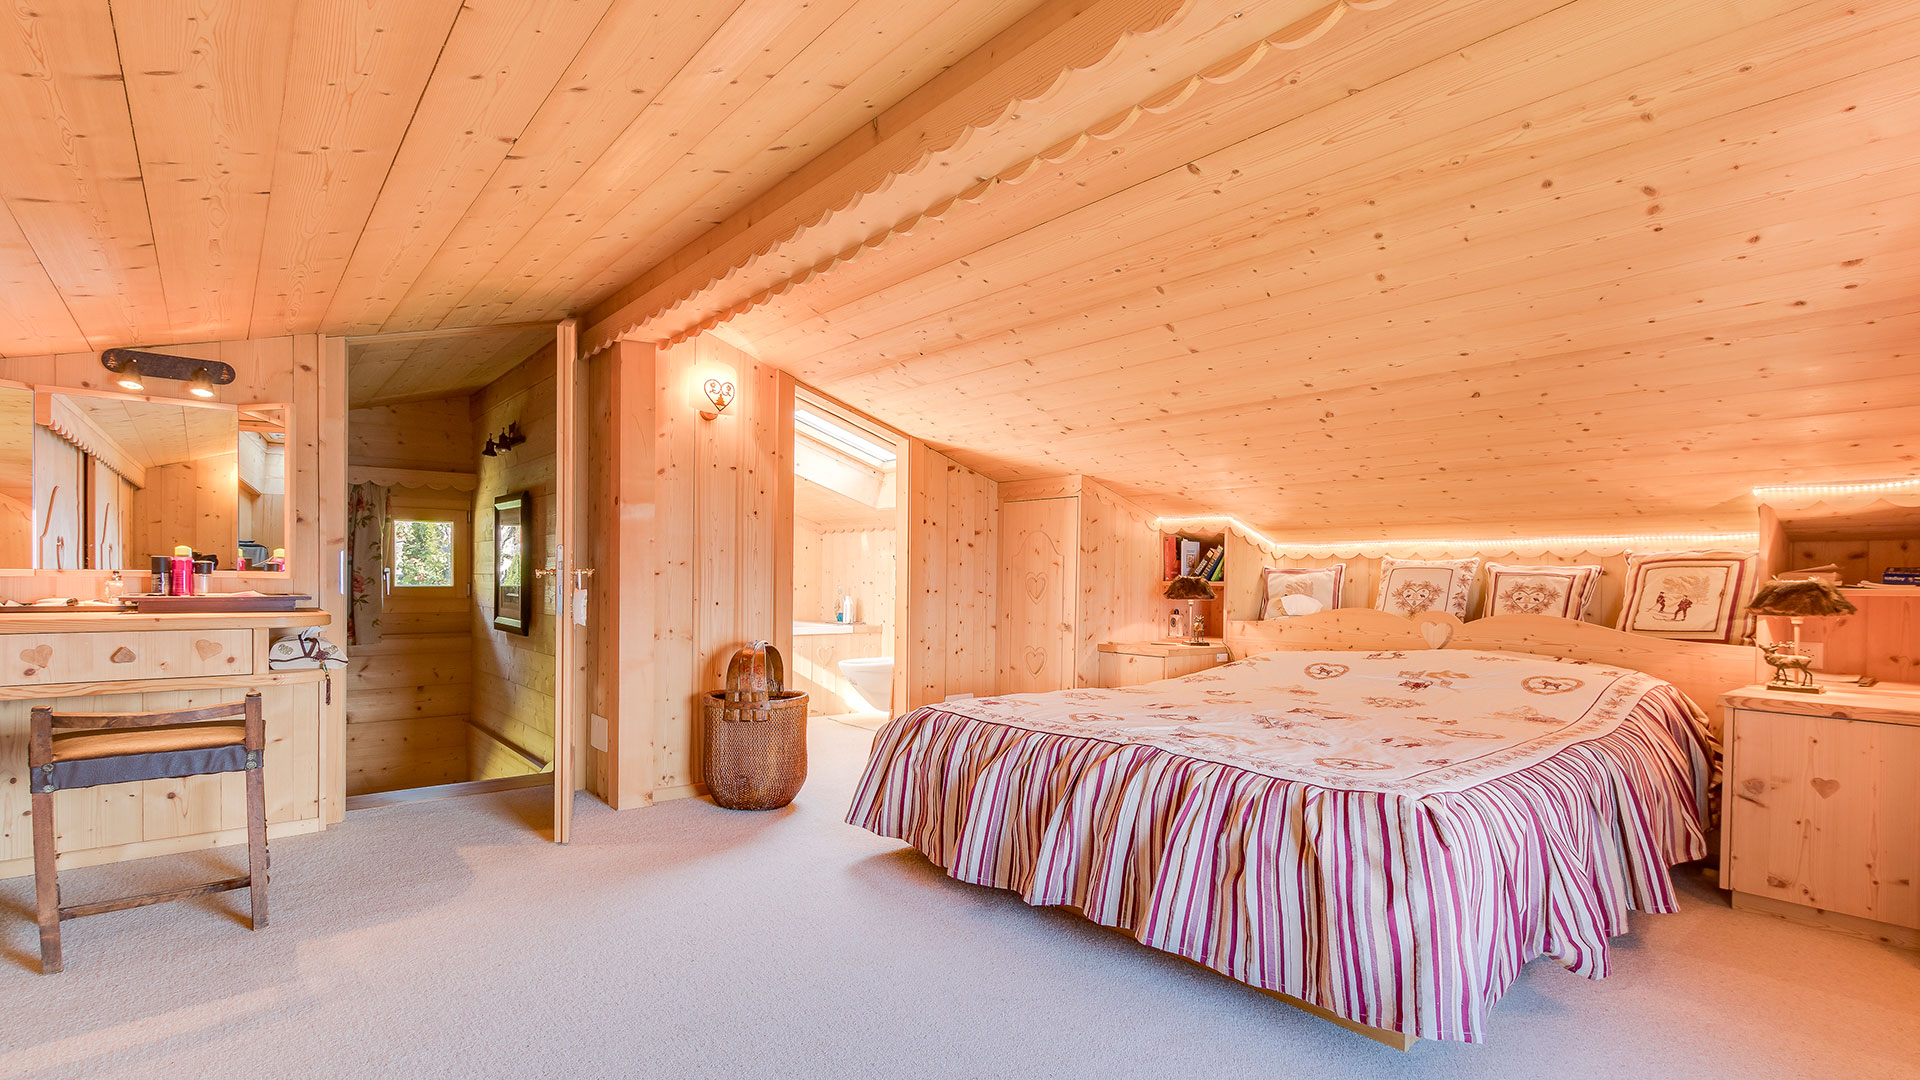 Le Chat Laid Chalet, Switzerland